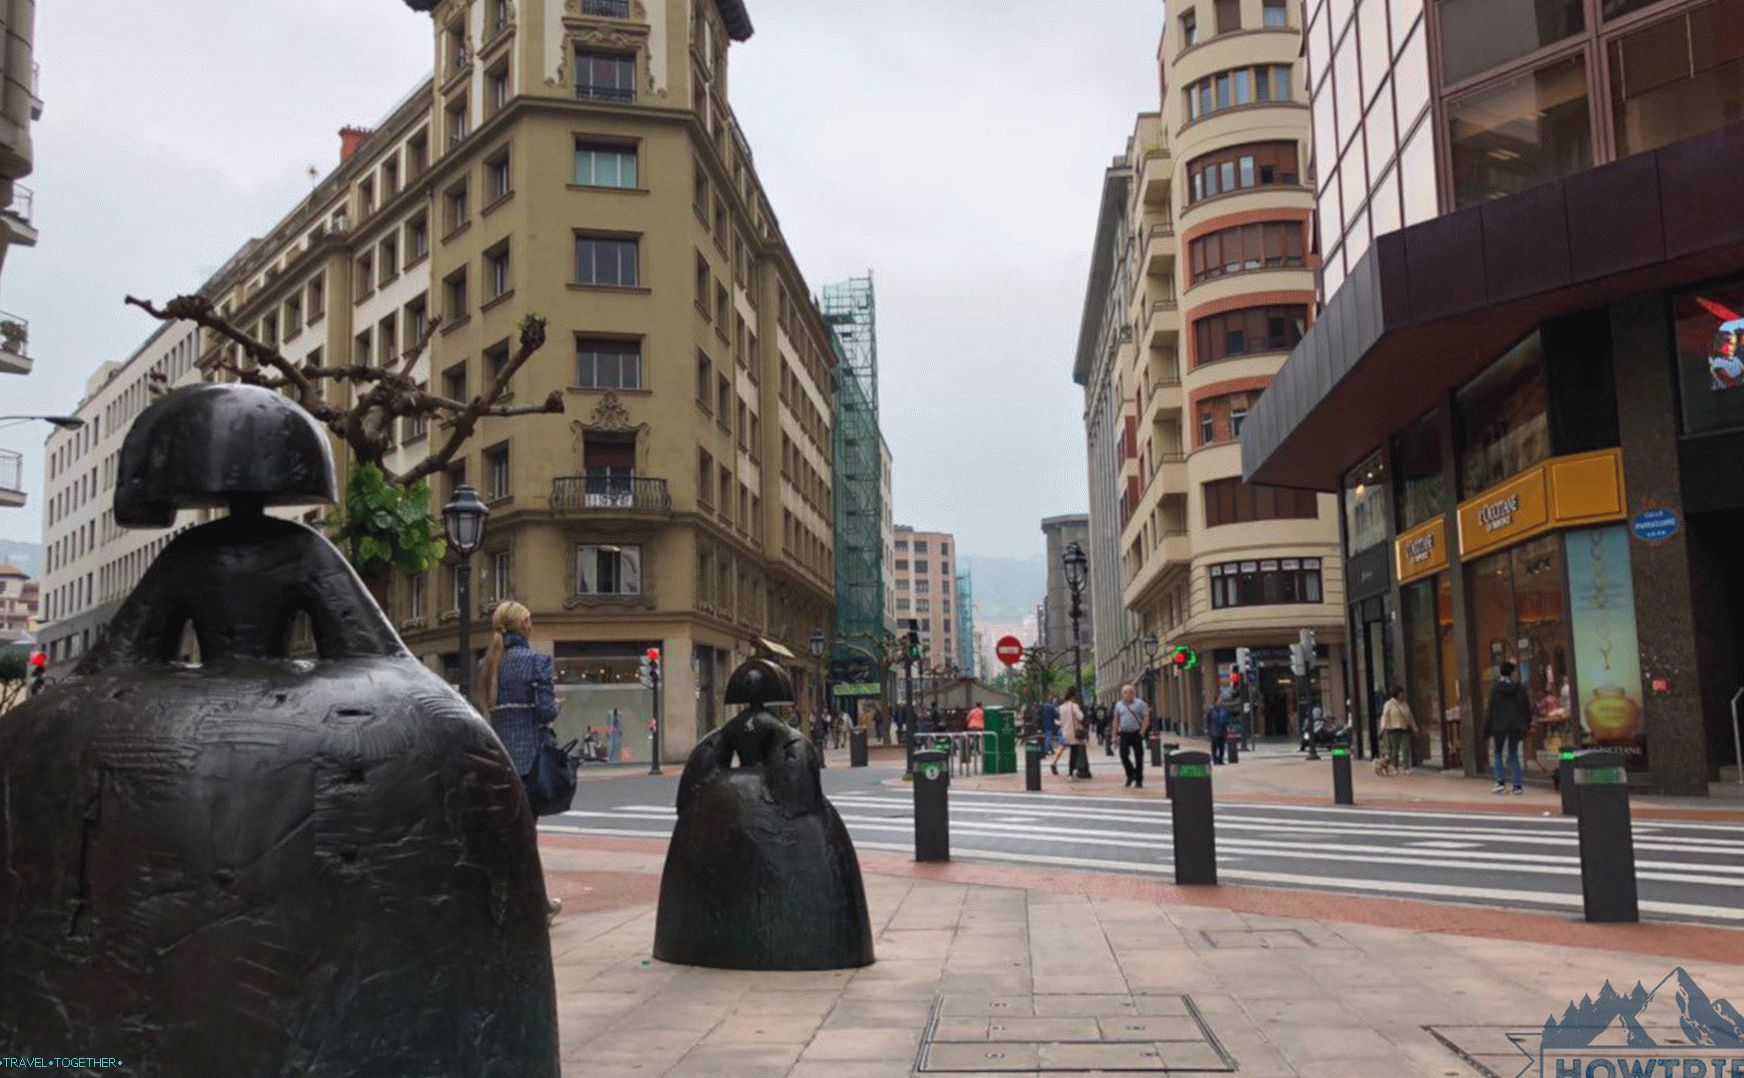 Bilbao (next to San Sebastian)